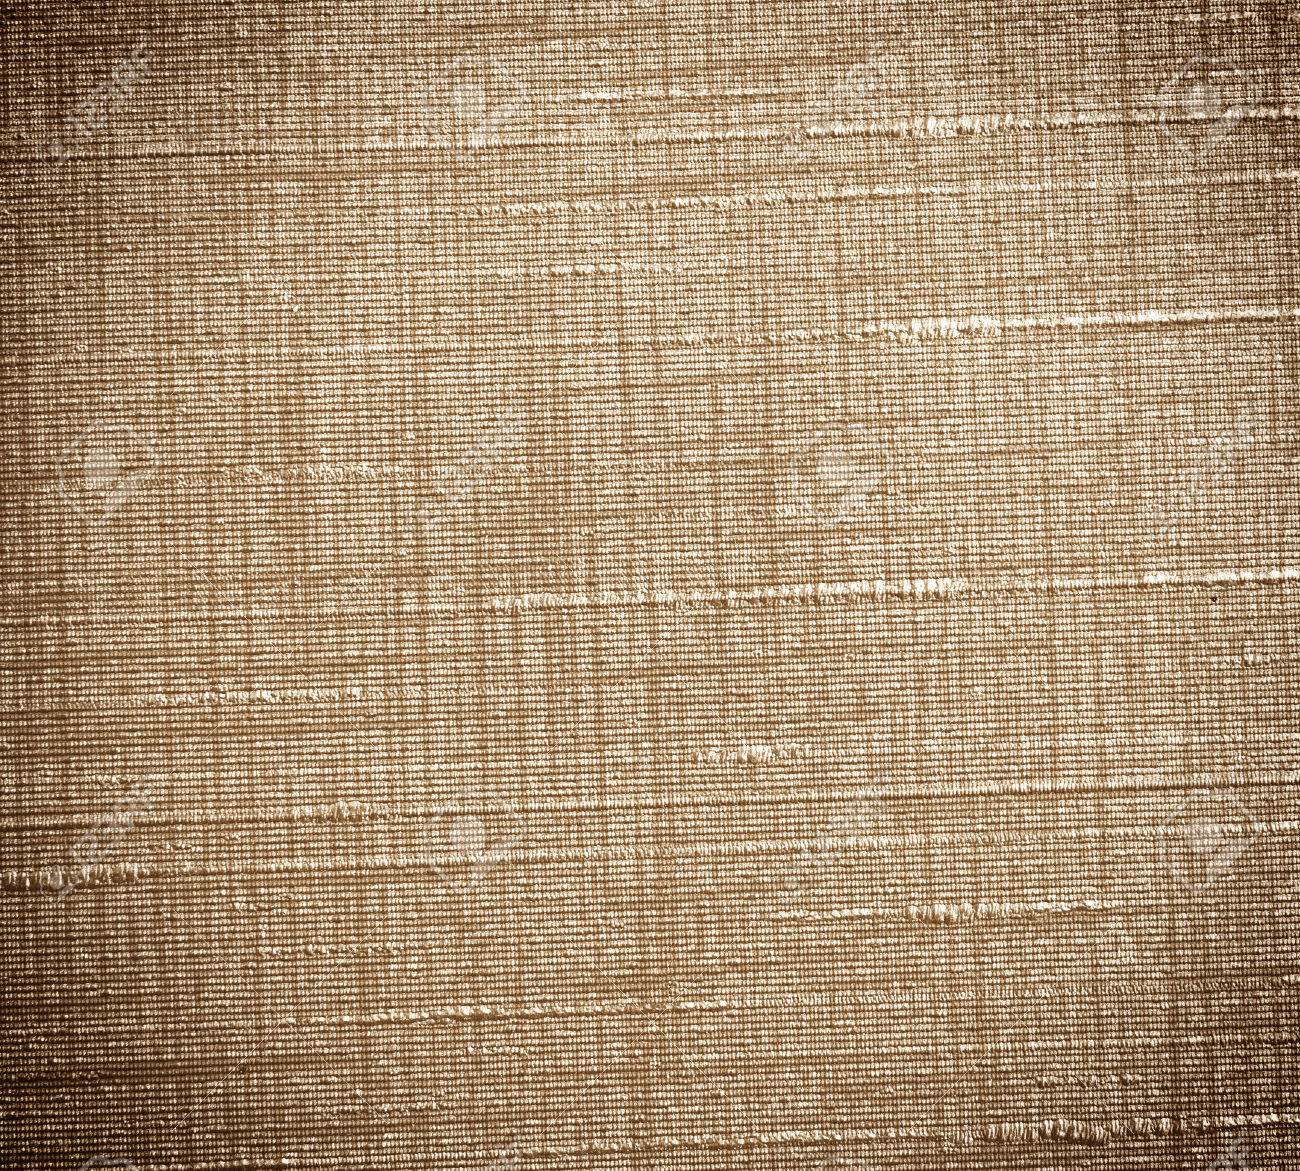 Interior wallpaper texture - Stock Photo Vintage Vinyl Wallpaper Wall Background Texture Interior